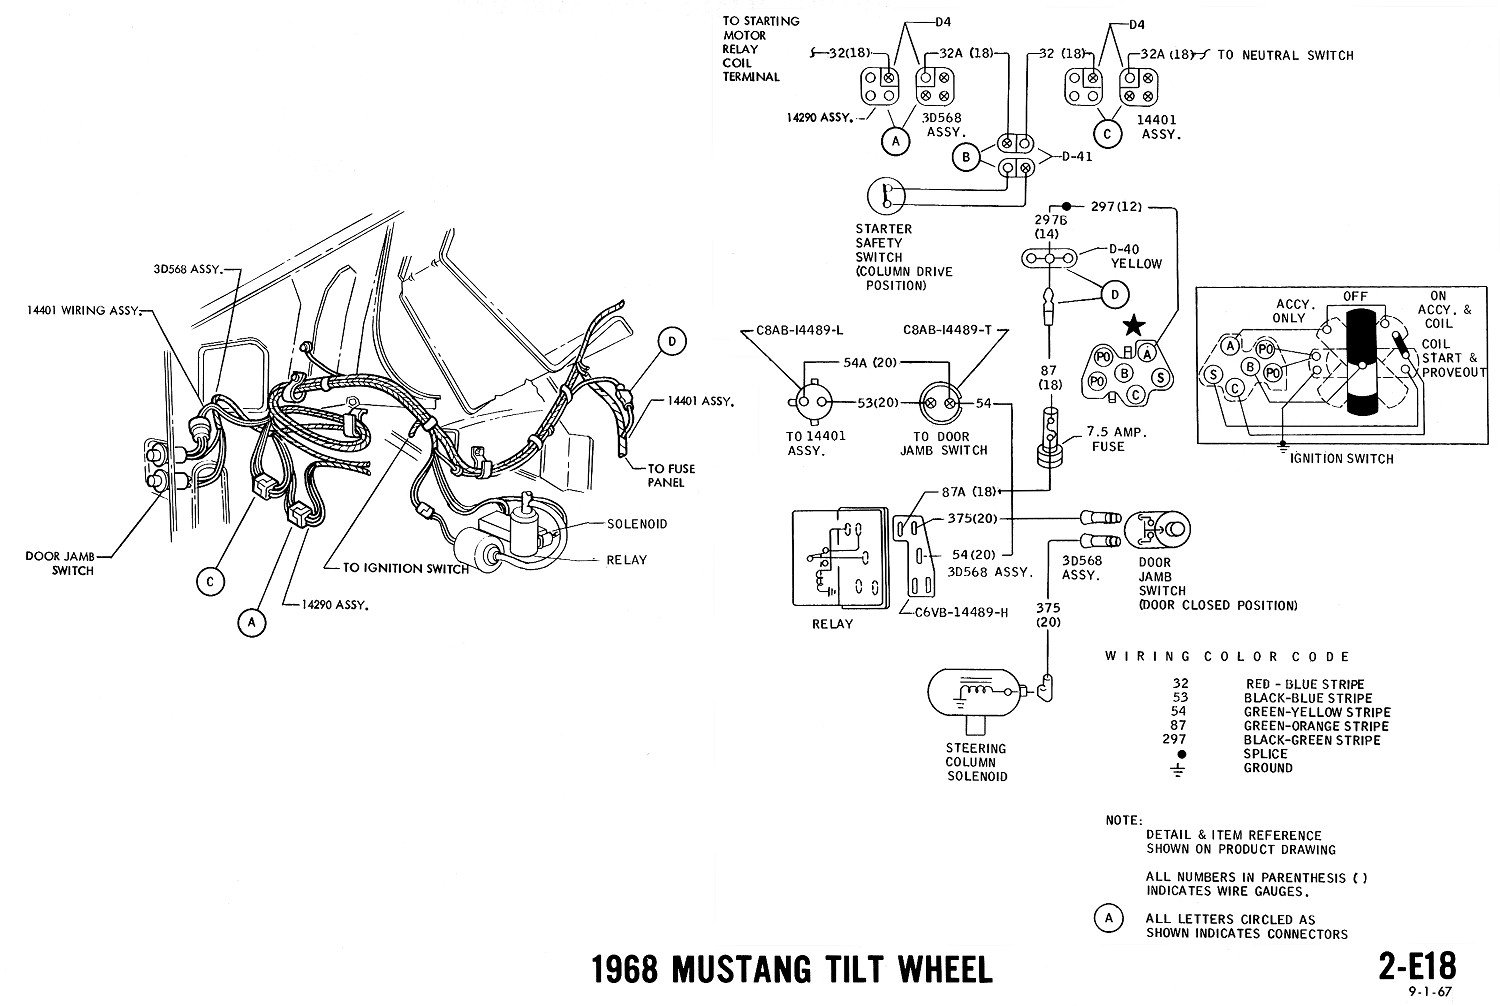 1965 mustang horn wiring diagram wye delta motor control 1968 diagrams evolving software